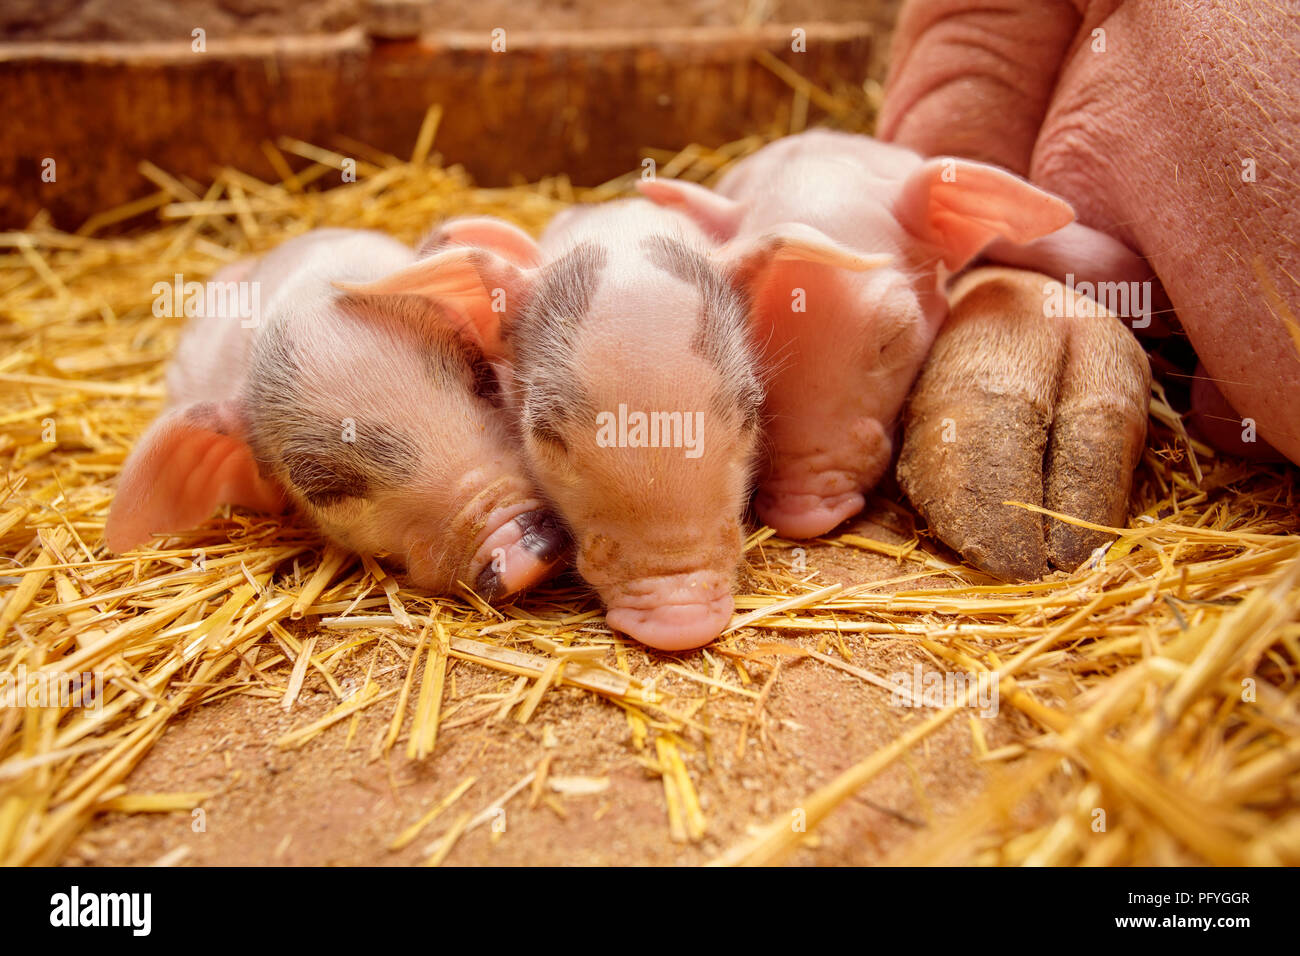 Piggy on the Mother's background - Stock Image